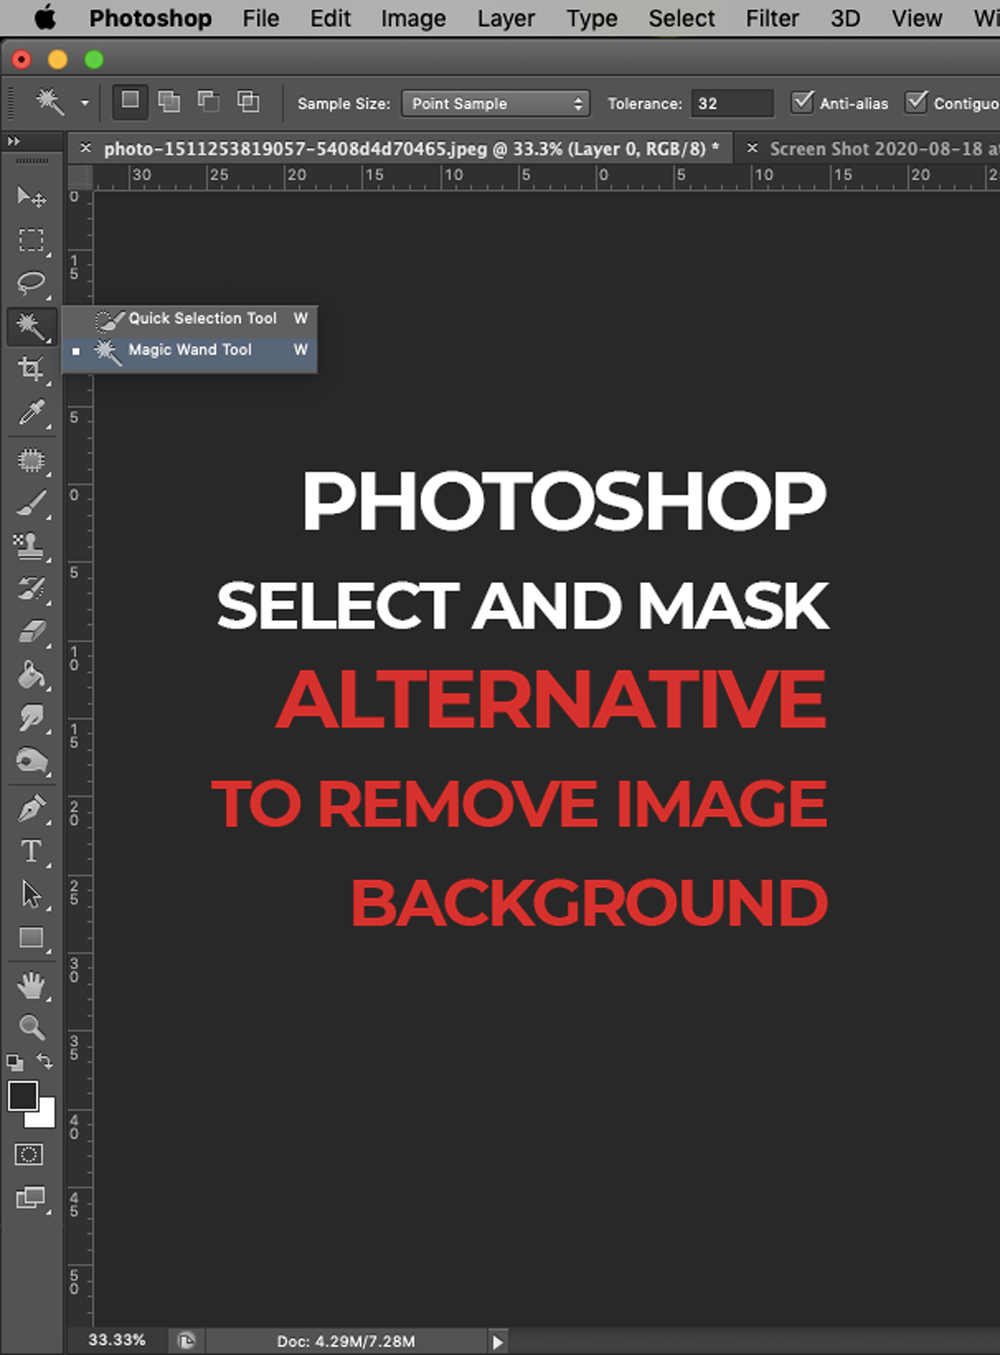 PHOTOSHOP'S SELECT AND MASK